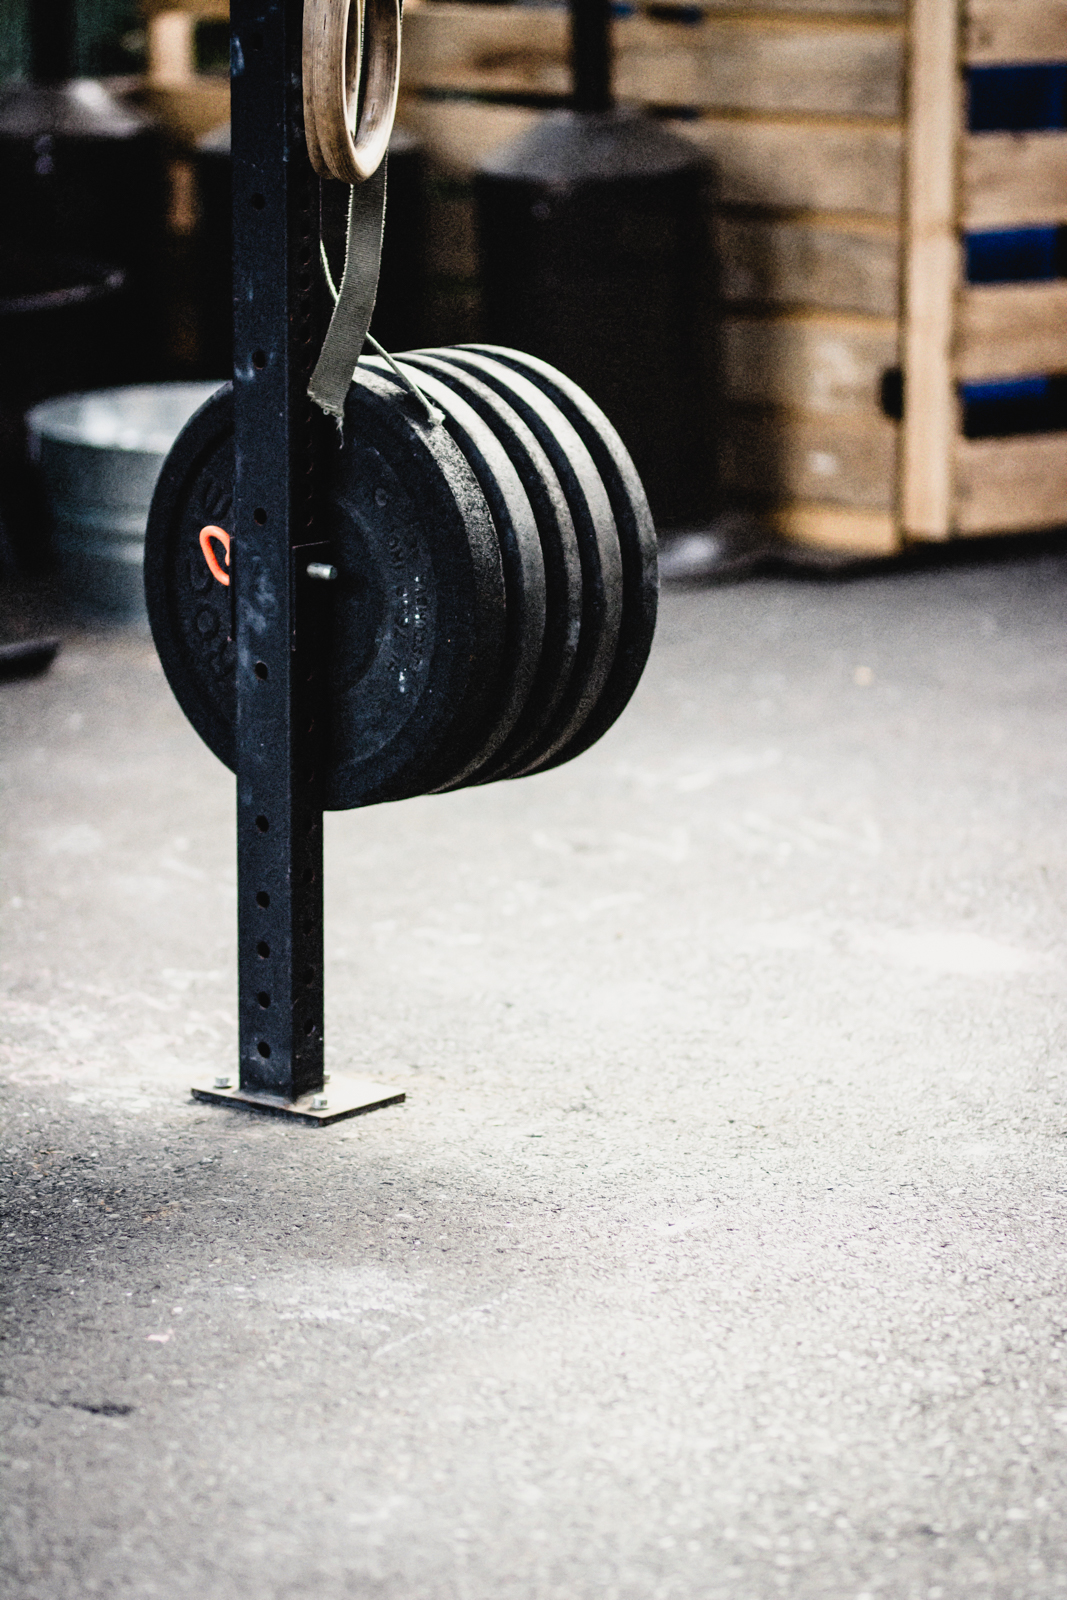 Learn how to choose the best protein powder for post-workout recovery, building muscle, and getting stronger. Not all are created equal! | StupidEasyPaleo.com